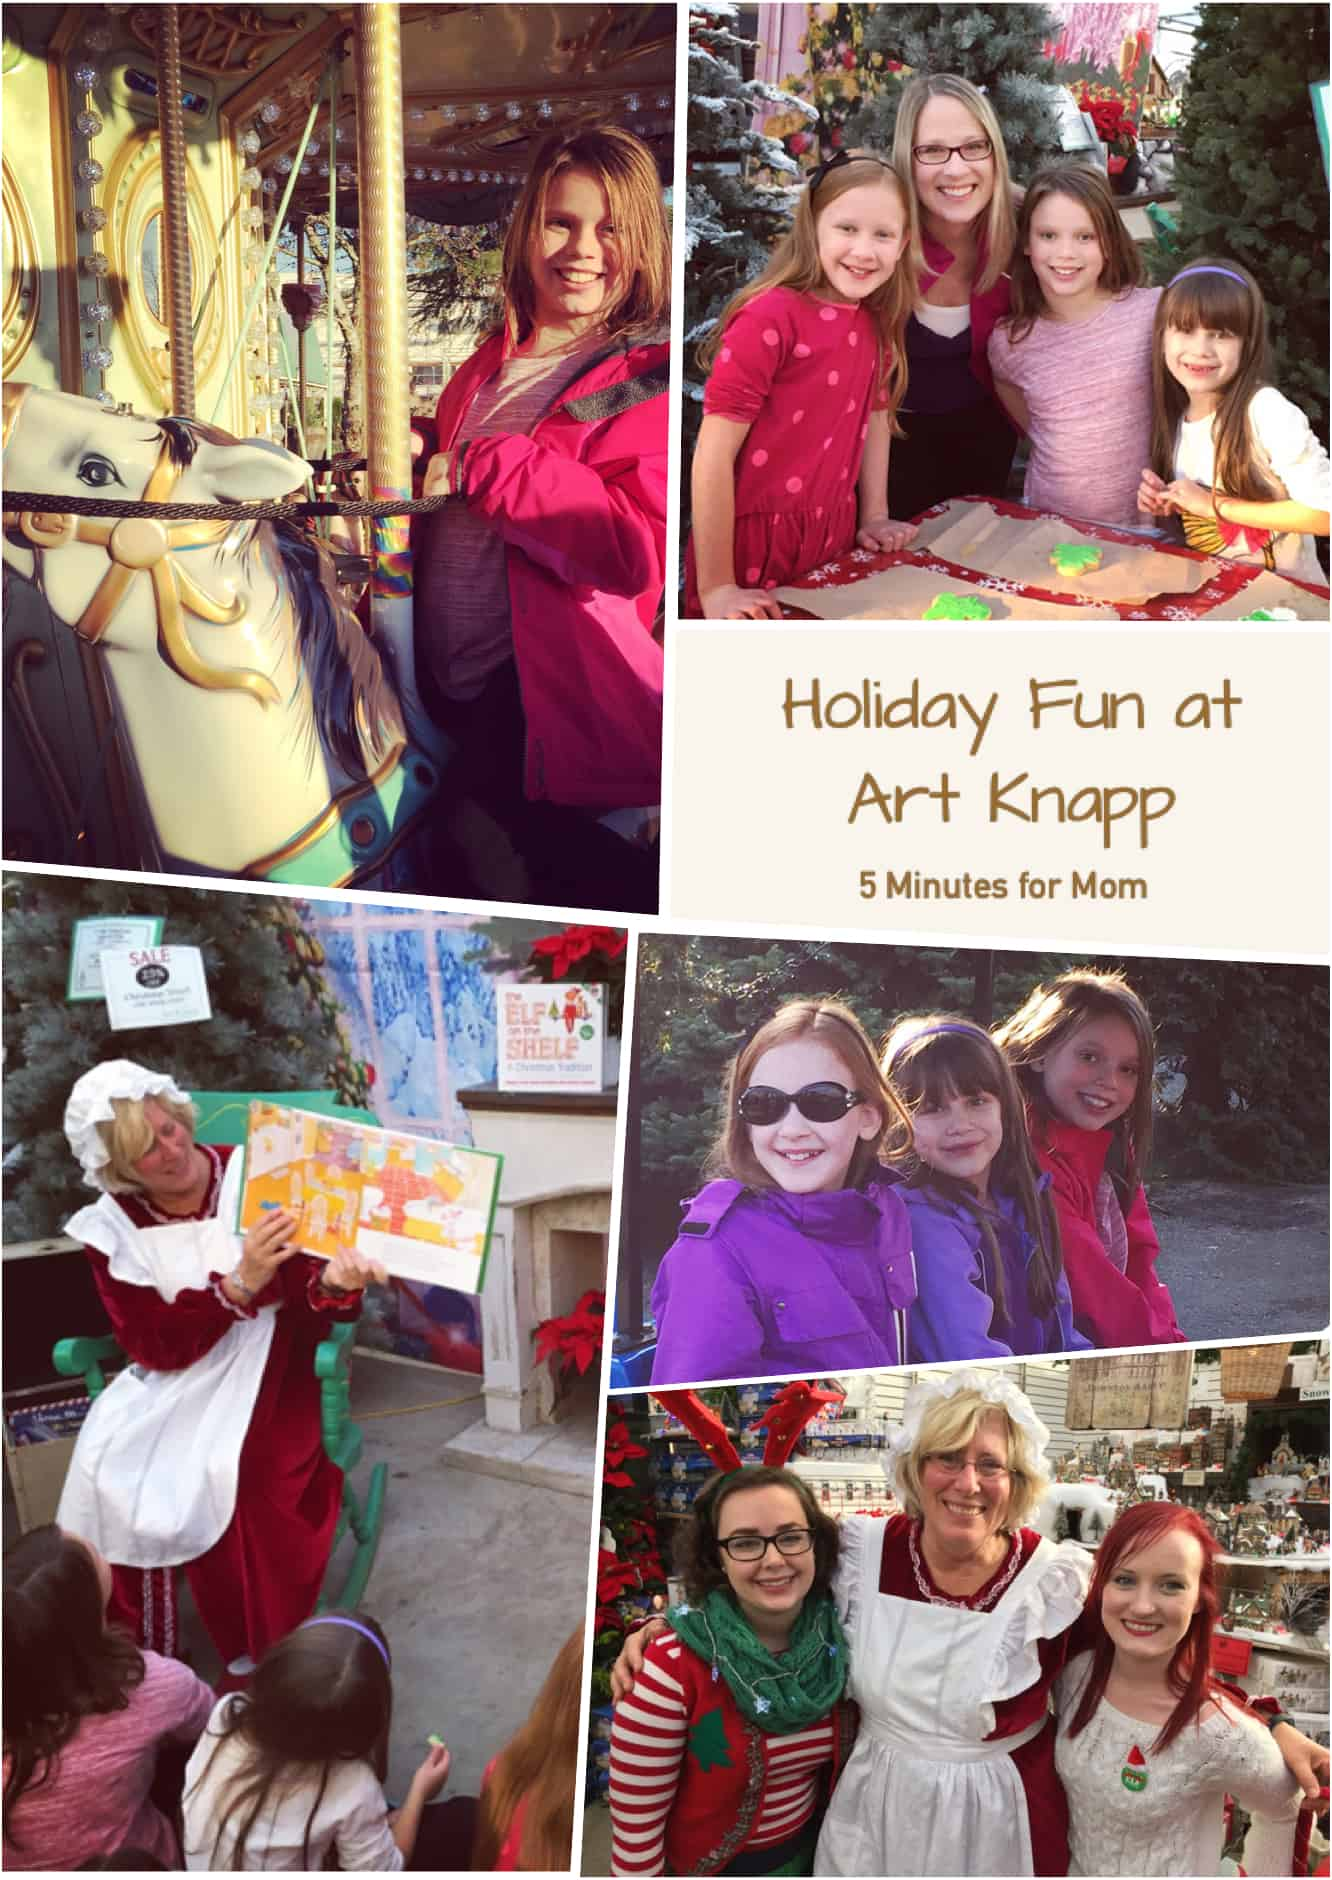 Holiday Fun at Art Knapp